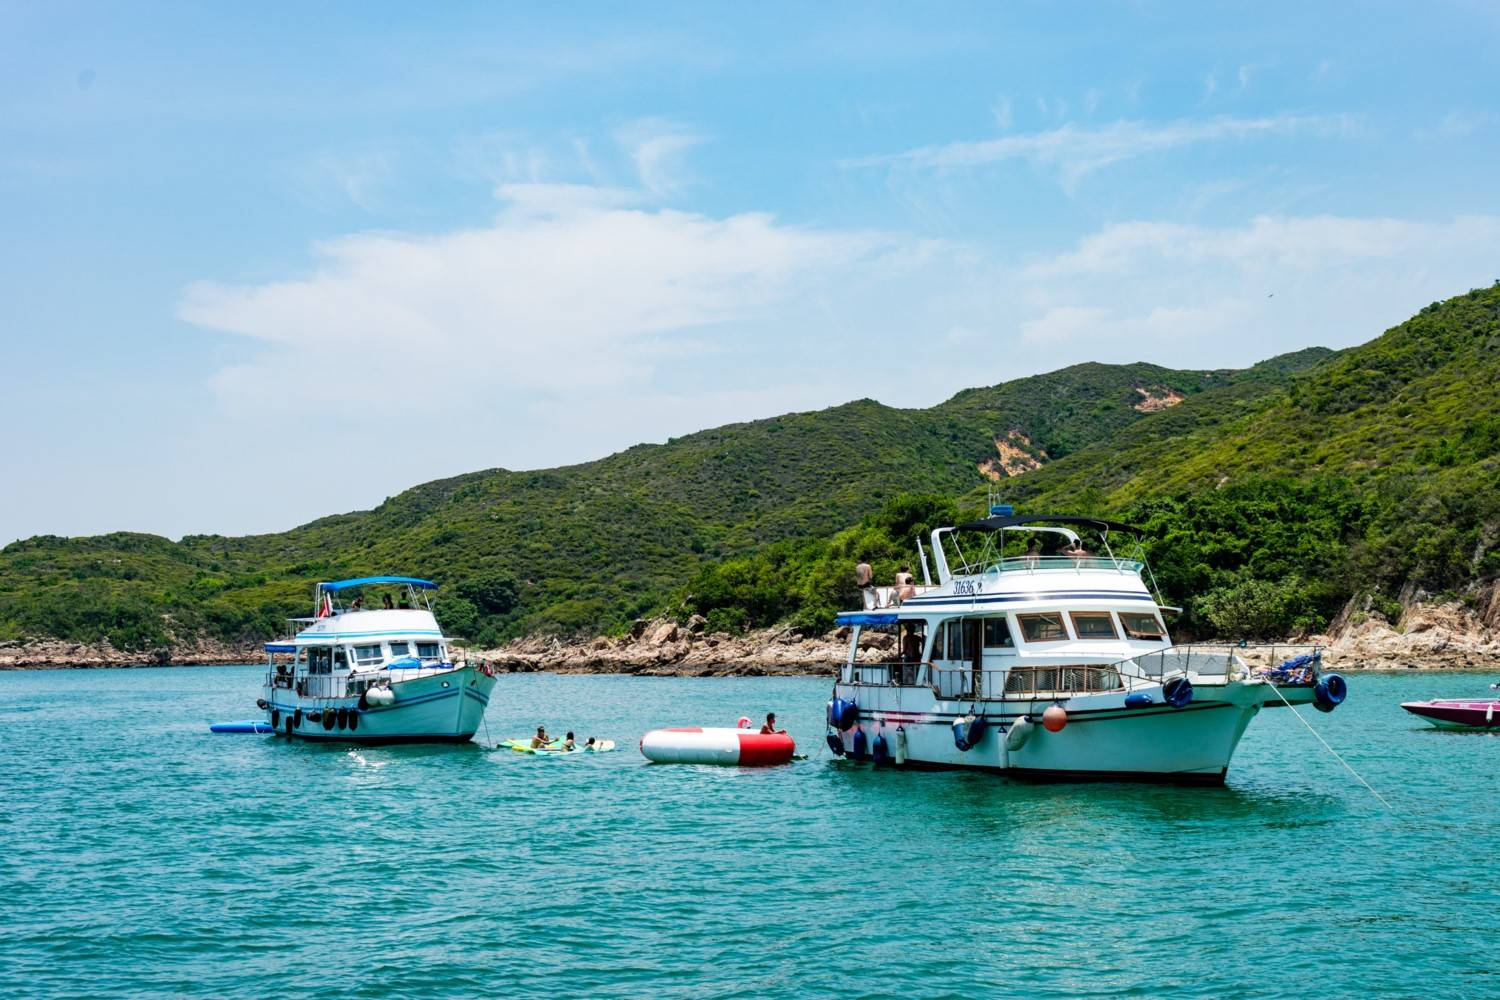 Boat Rental for Junk Parties in Sai Kung - Holimood Yacht